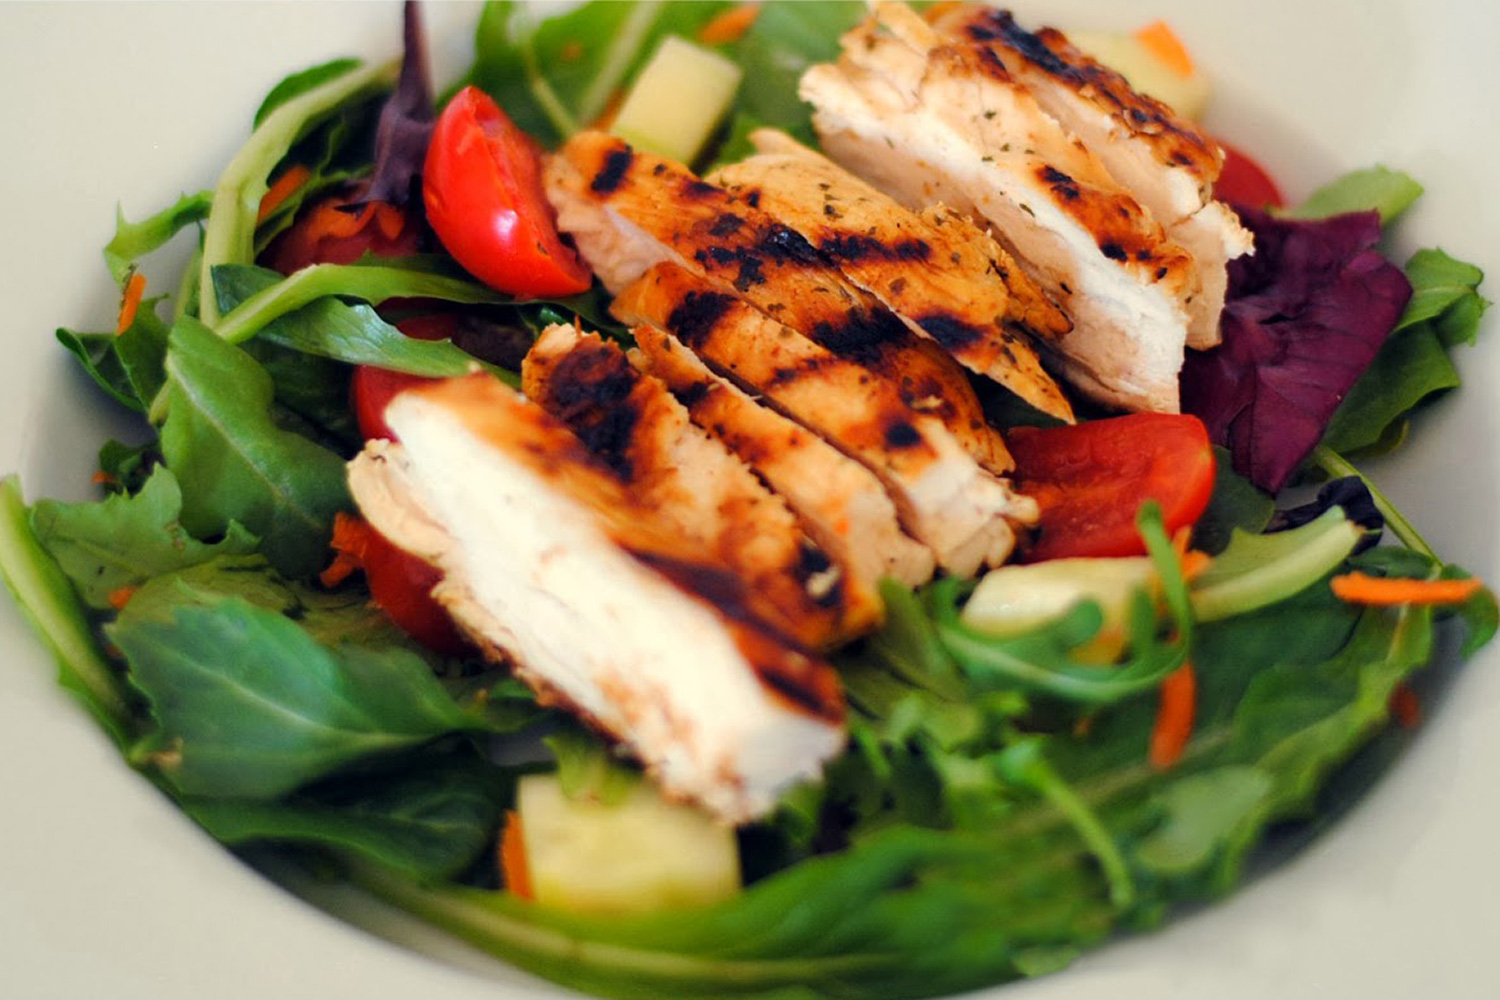 Grilled Chicken Salad ⋆ Innovative Health & Fitness